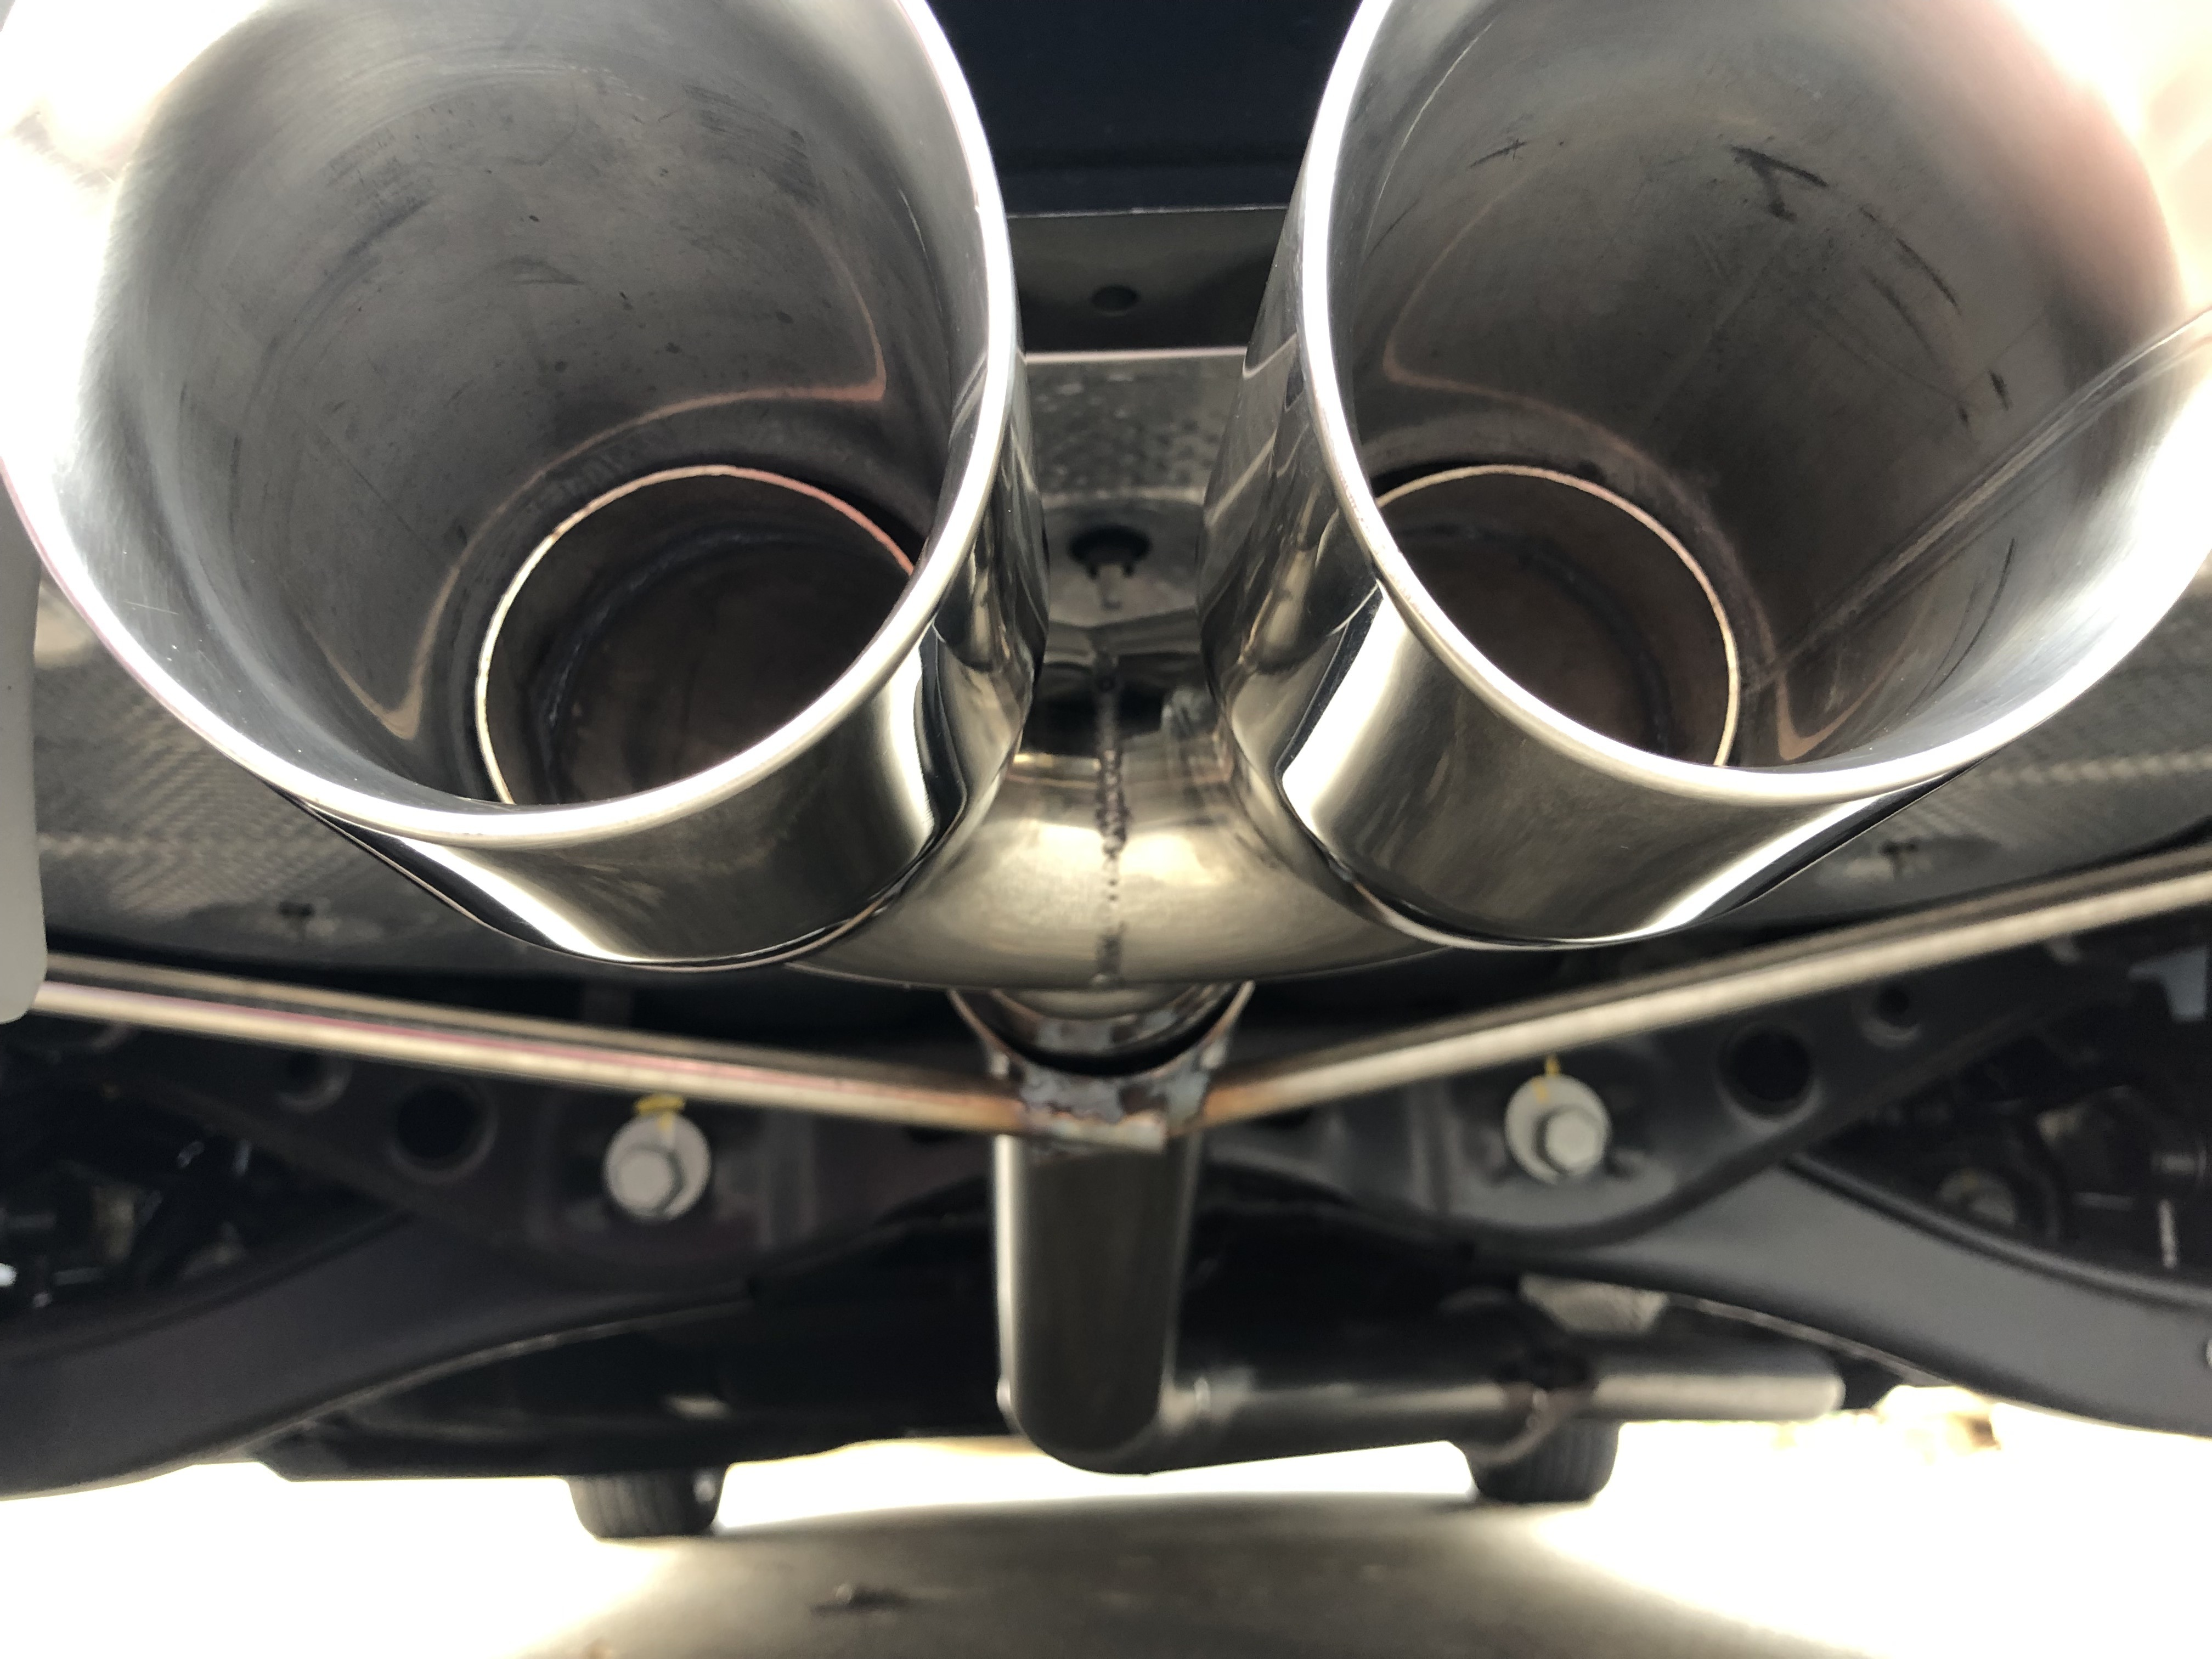 """""""New Axle-Back Exhaust System for my 2019 Hyundai Veloster 2.0L""""...-2019-hyundai-veloster-2.0l-axle-back-exhaust-system-1.jpg"""